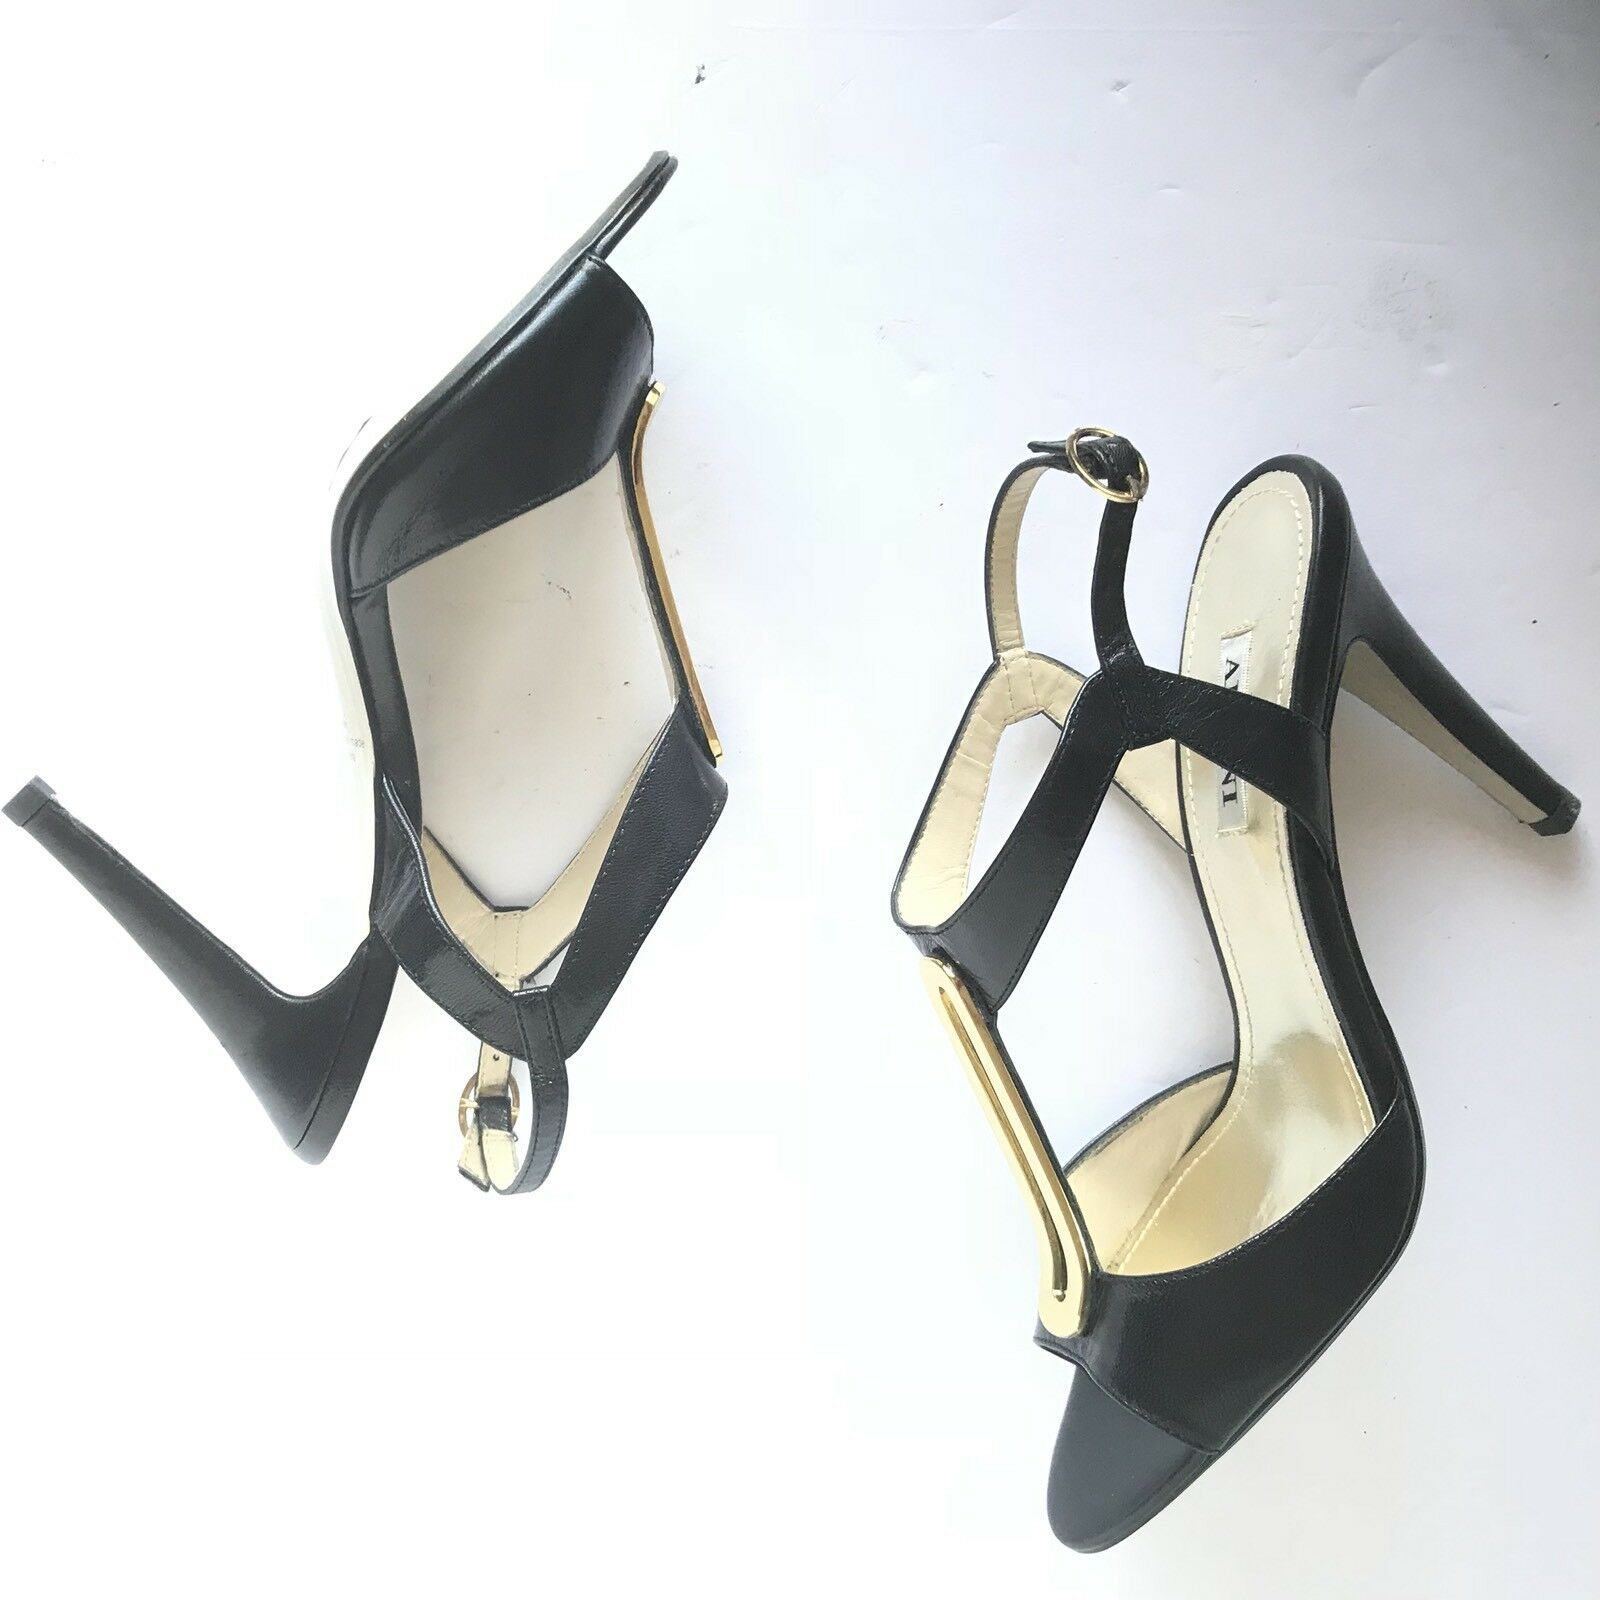 Alfani Asterik Black Leather Peep Toe with Gold Accent Sandals Heels - sz. 6.5